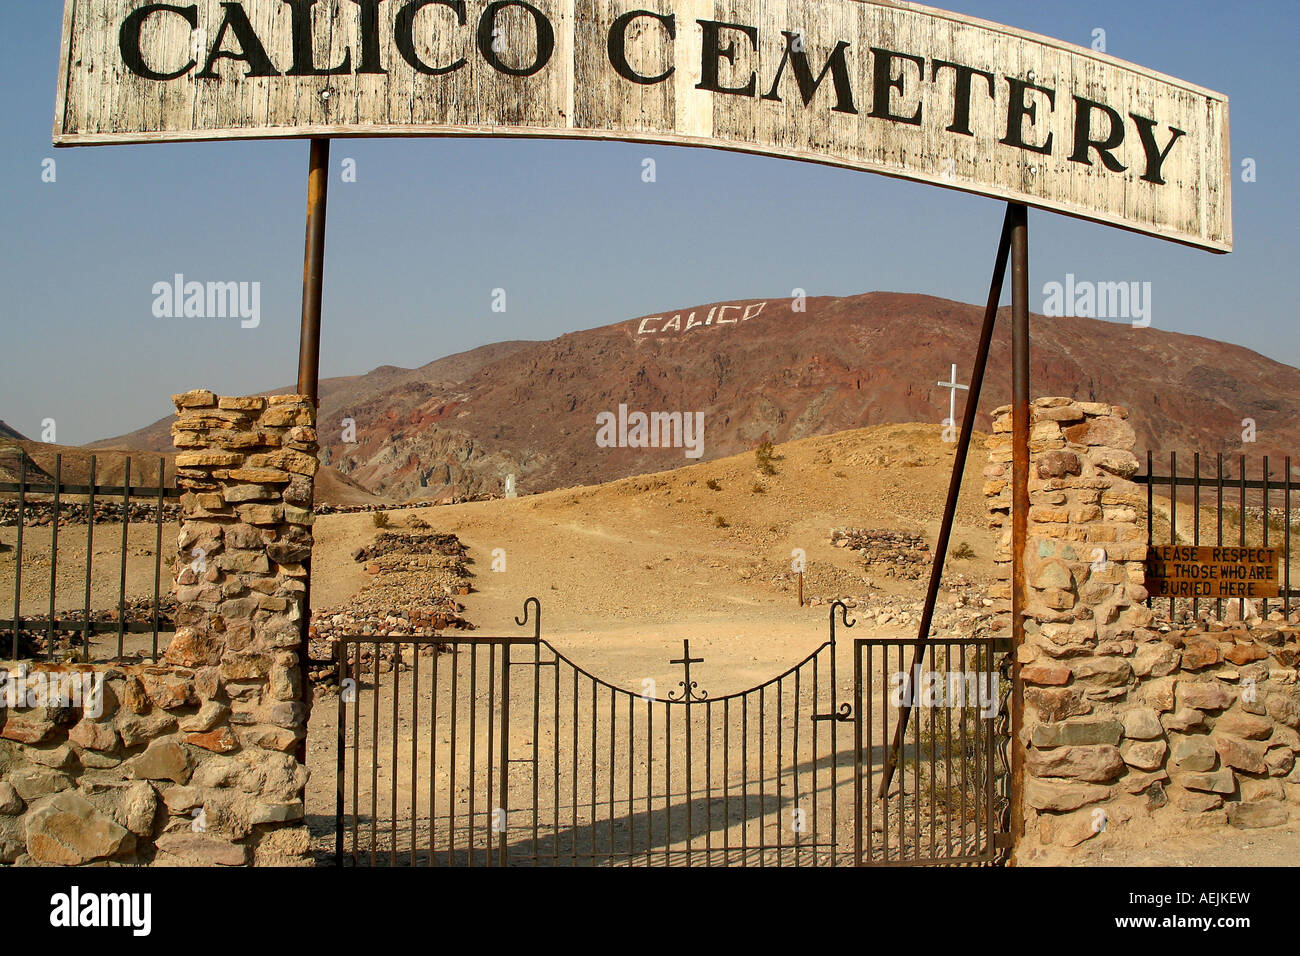 Cemetery of 'Ghosttown' Calico Calico California United States of America USA - Stock Image